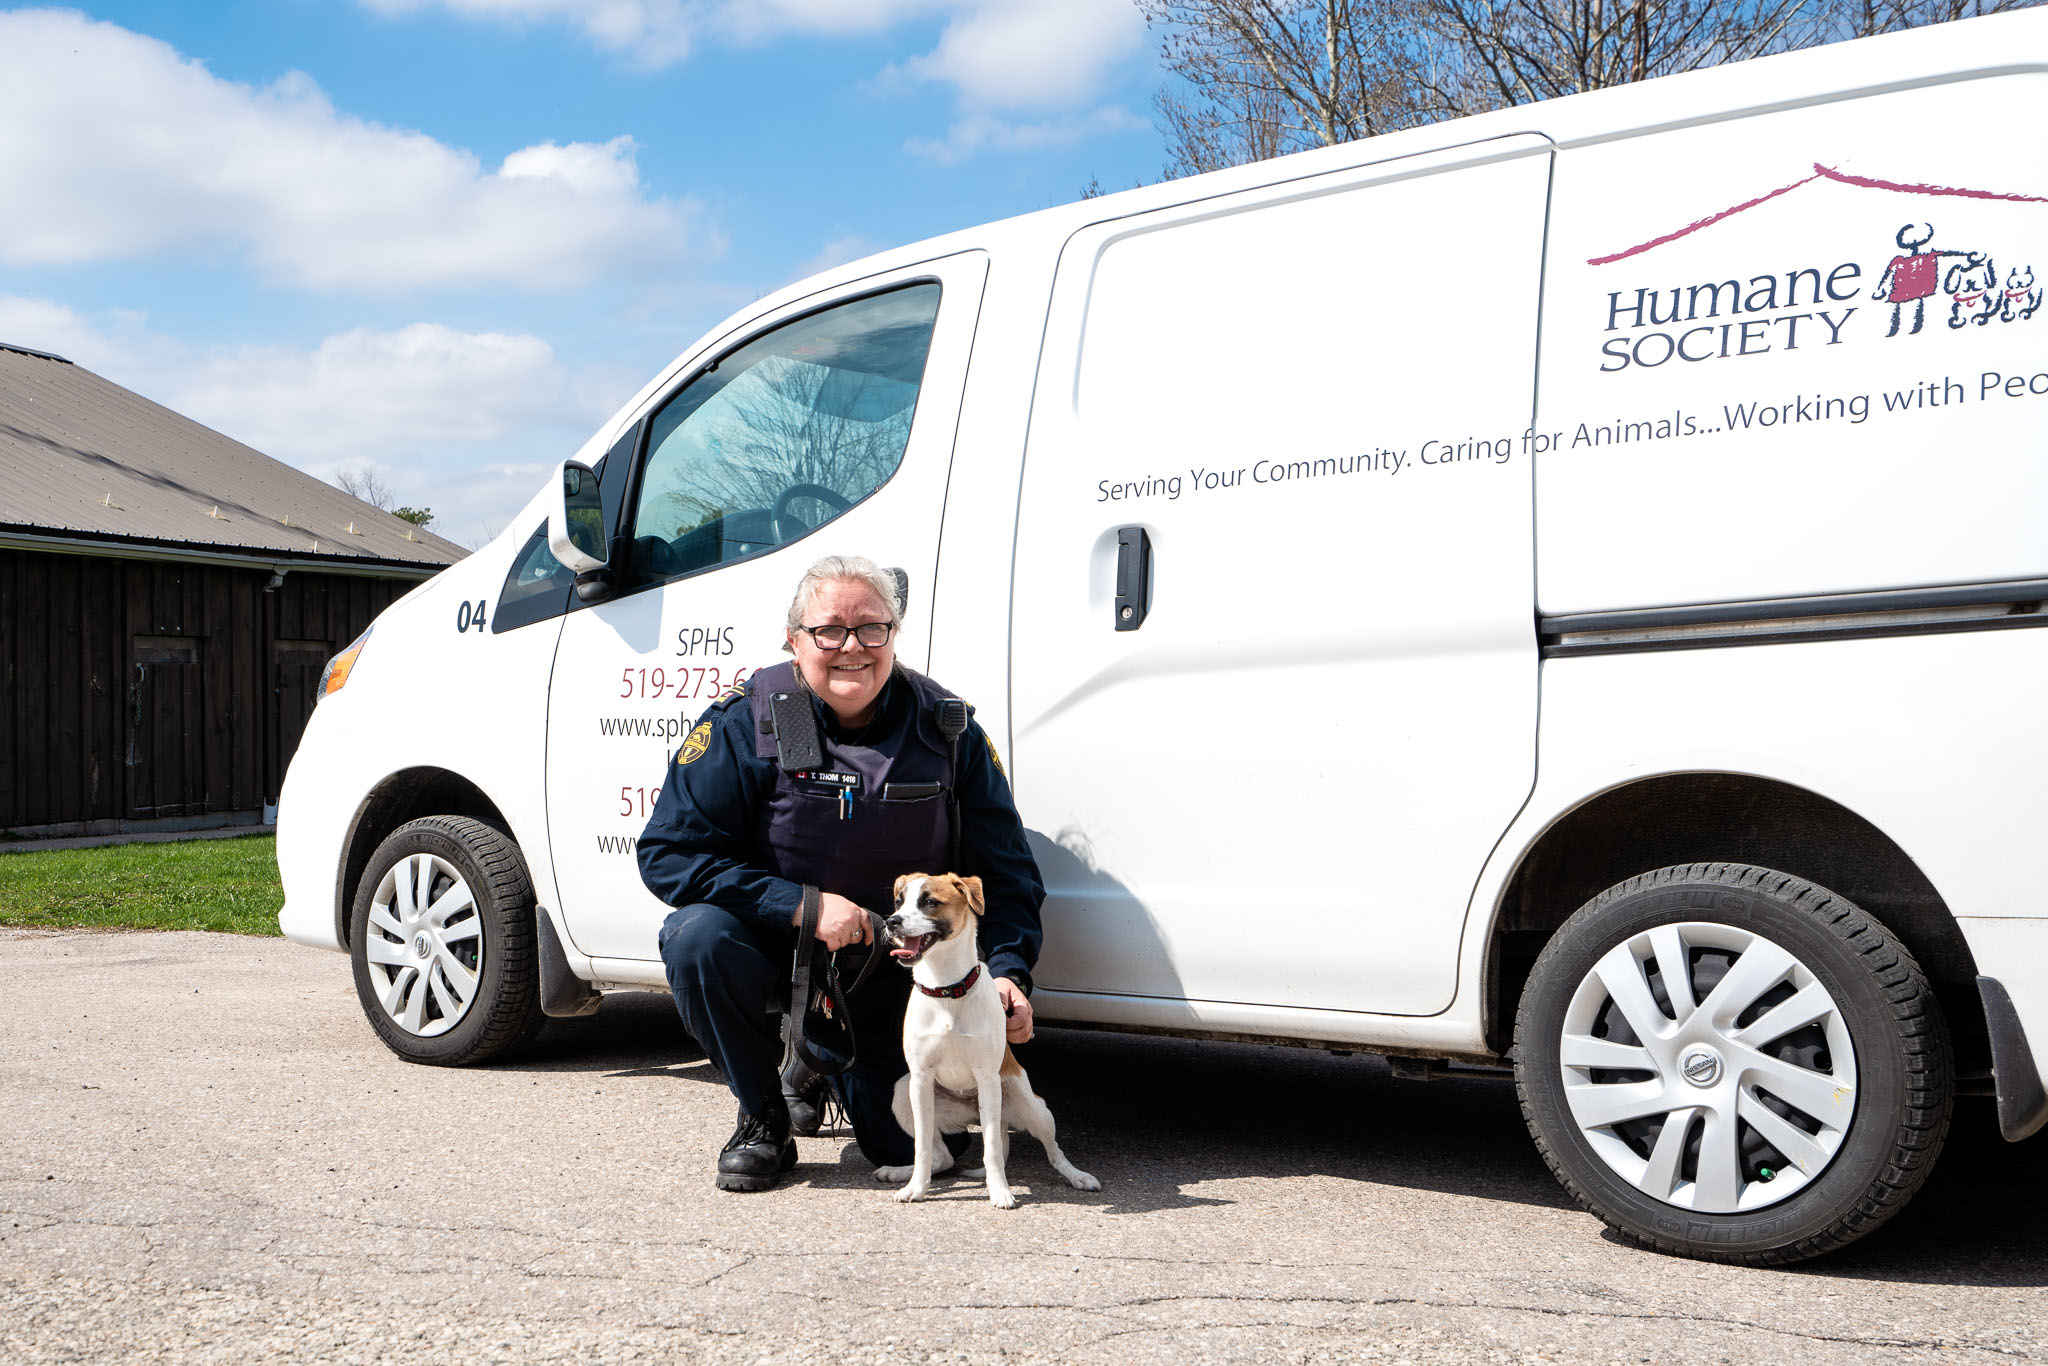 Photo of an Animal Control Officer and a dog beside a Humane Society van